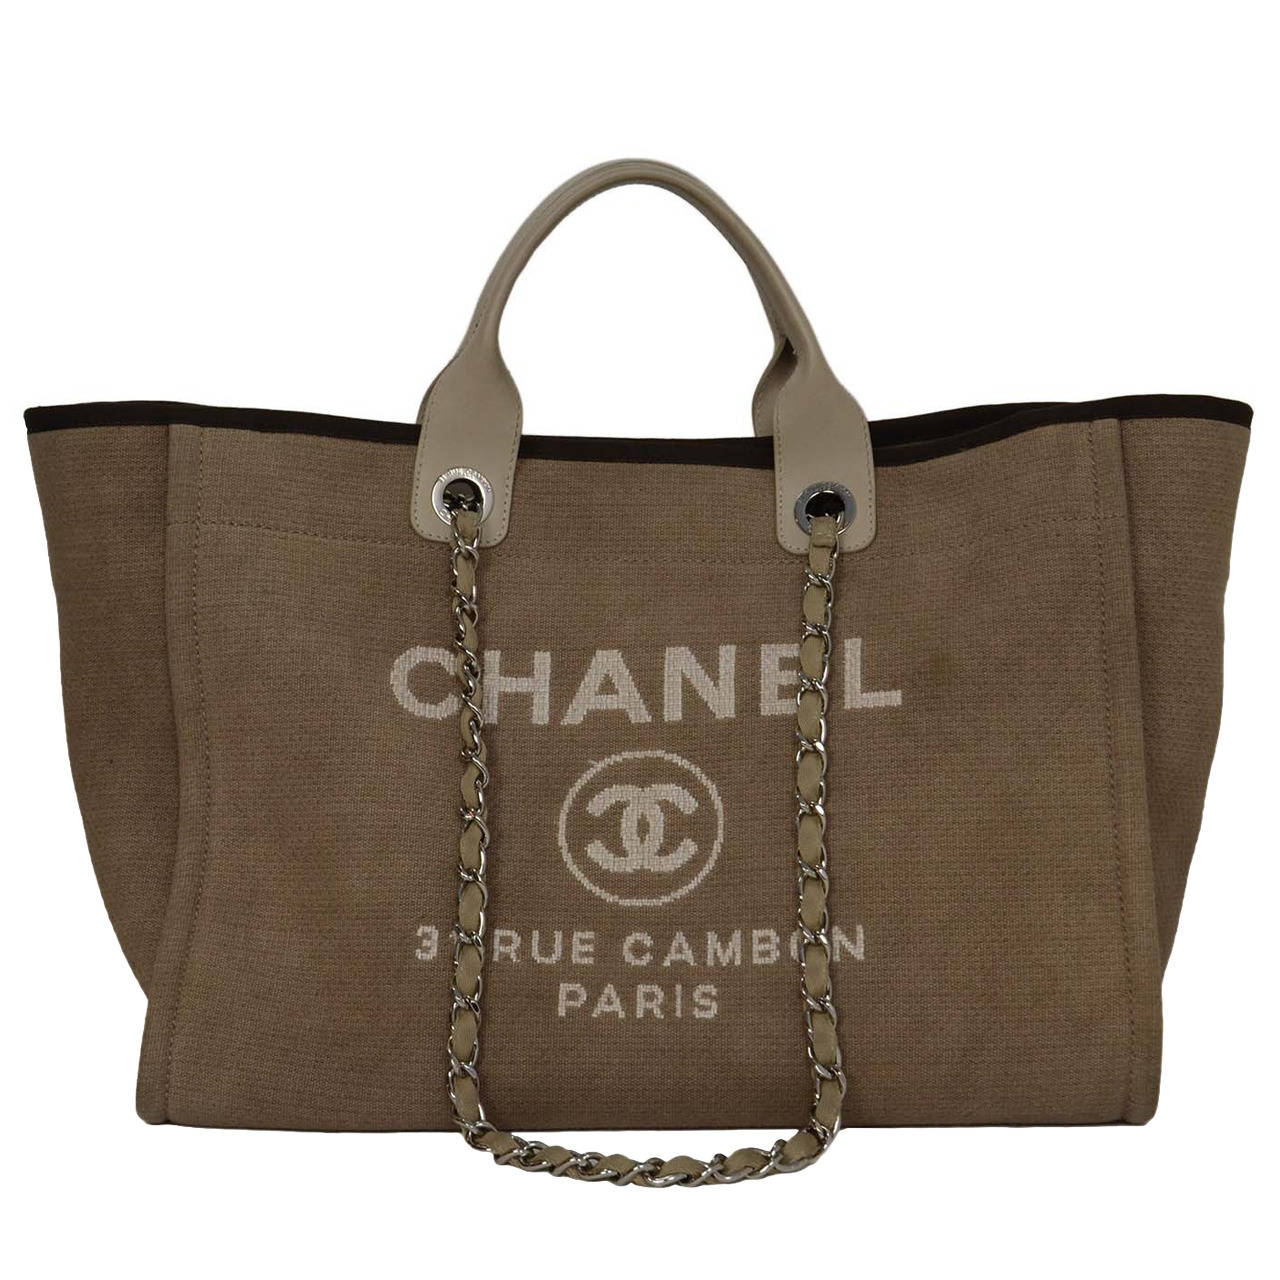 753d37cceeebb7 Chanel Canvas Tote Shopping Bag | Ville du Muy